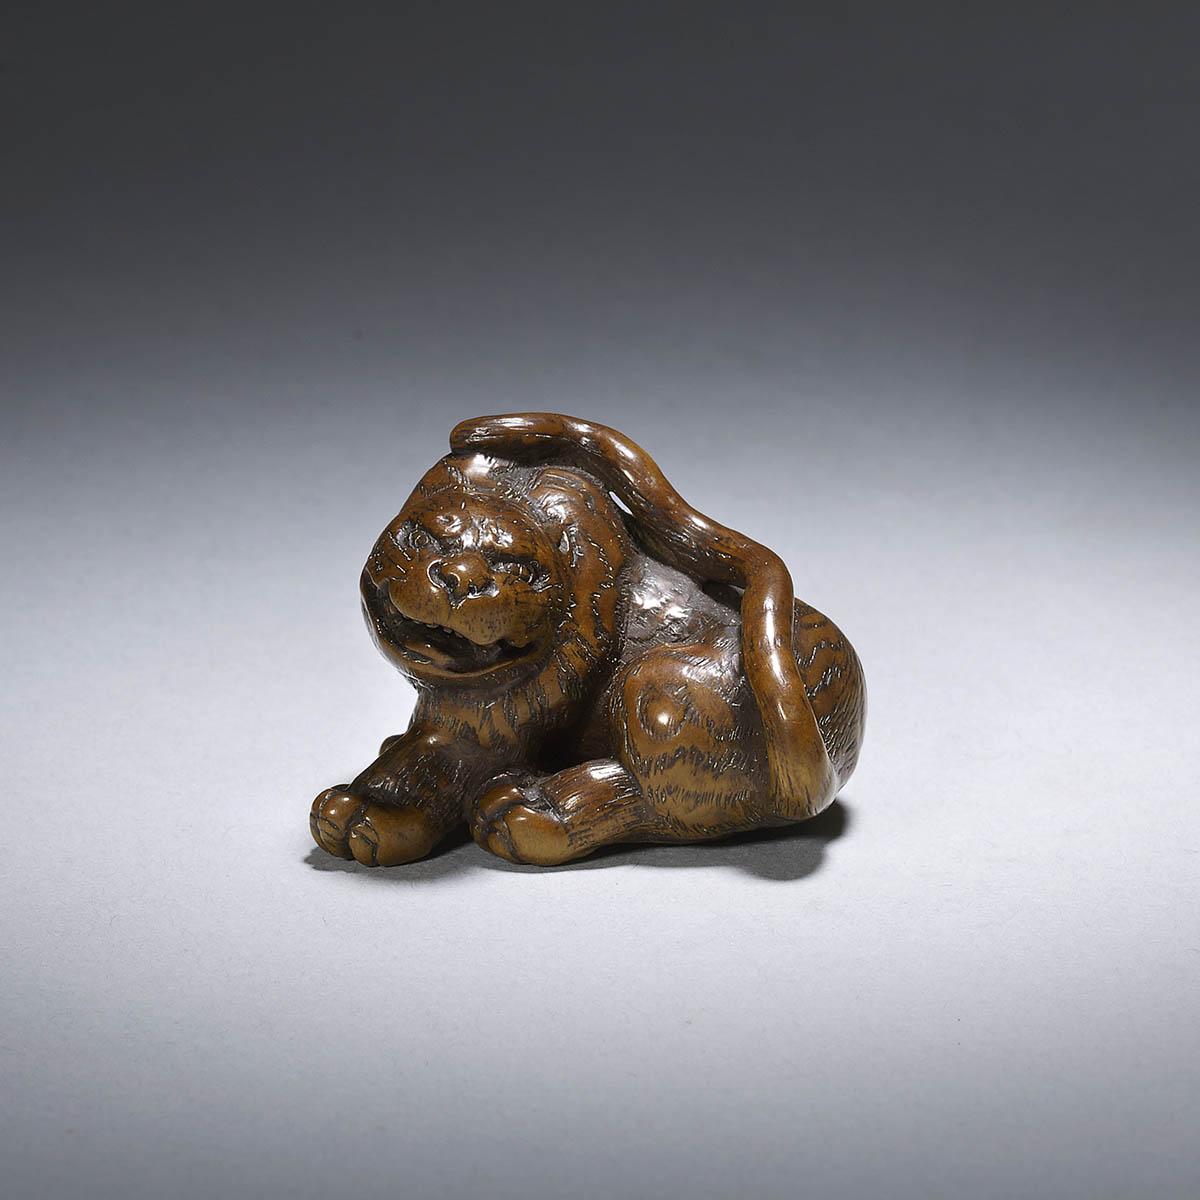 Kokei, wood netsuke of a tiger